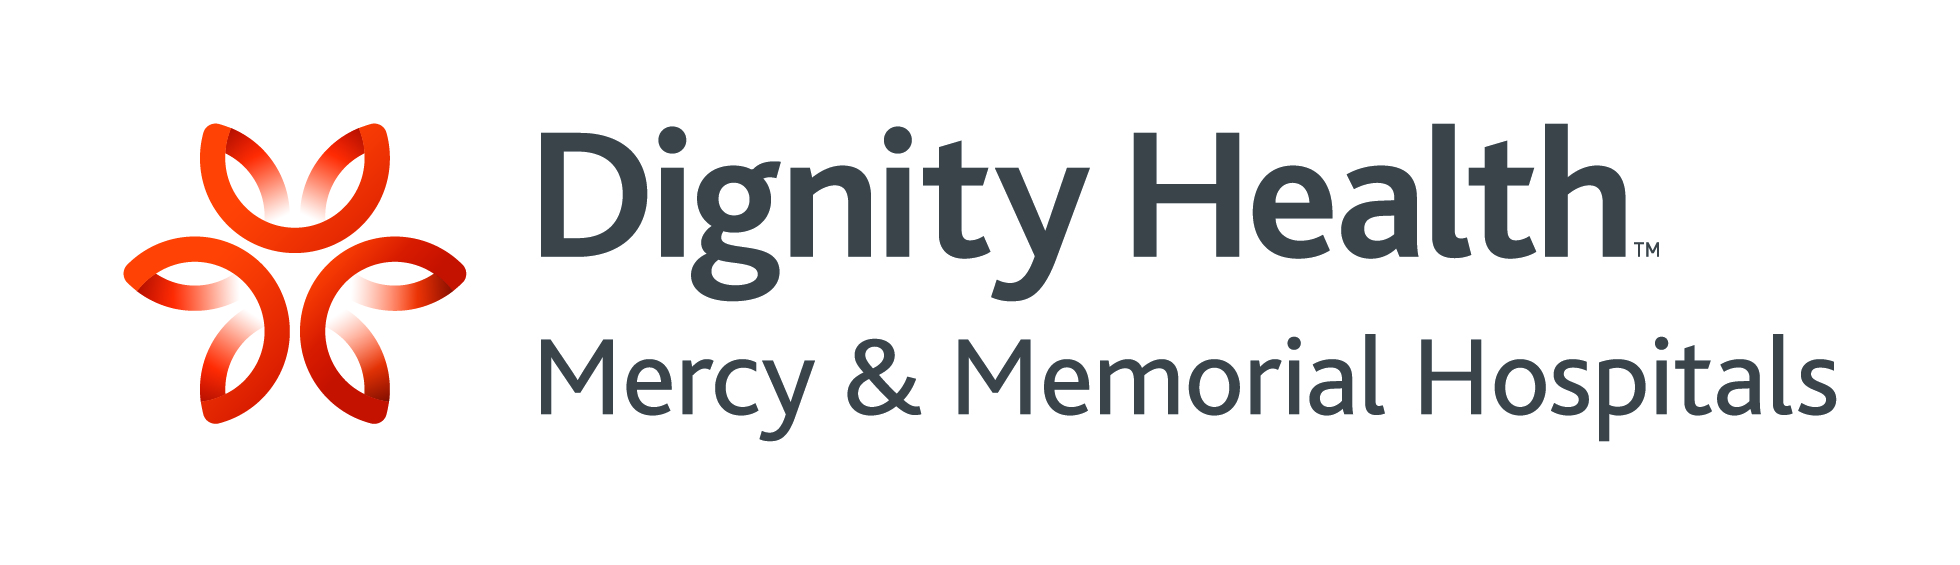 Dignity Health Bakersfield Rally 2016